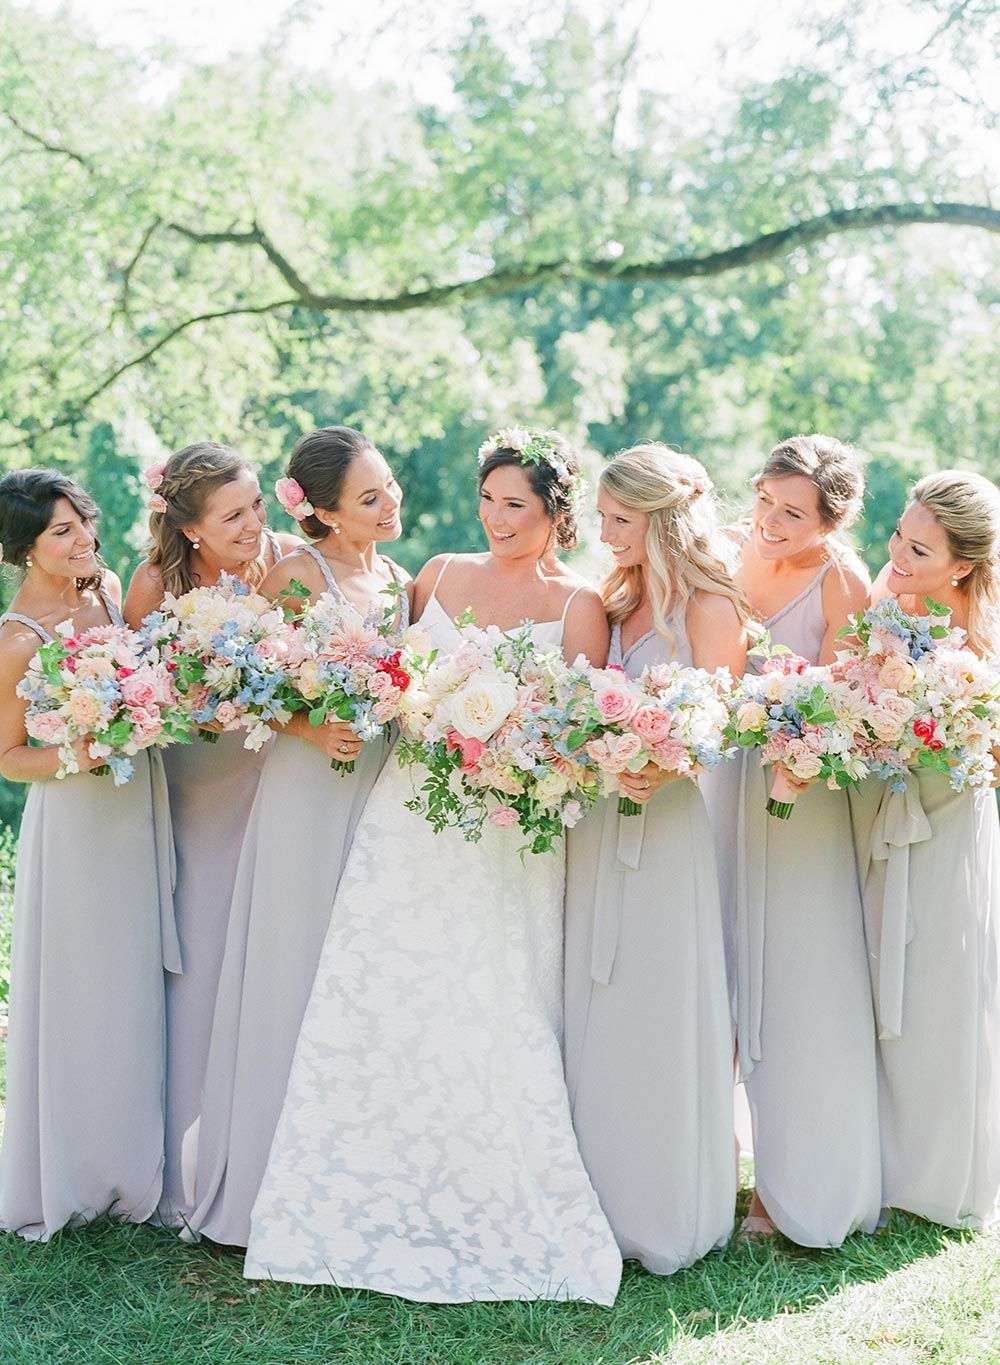 Decadent maryland wedding youull want to bookmark forever weddings